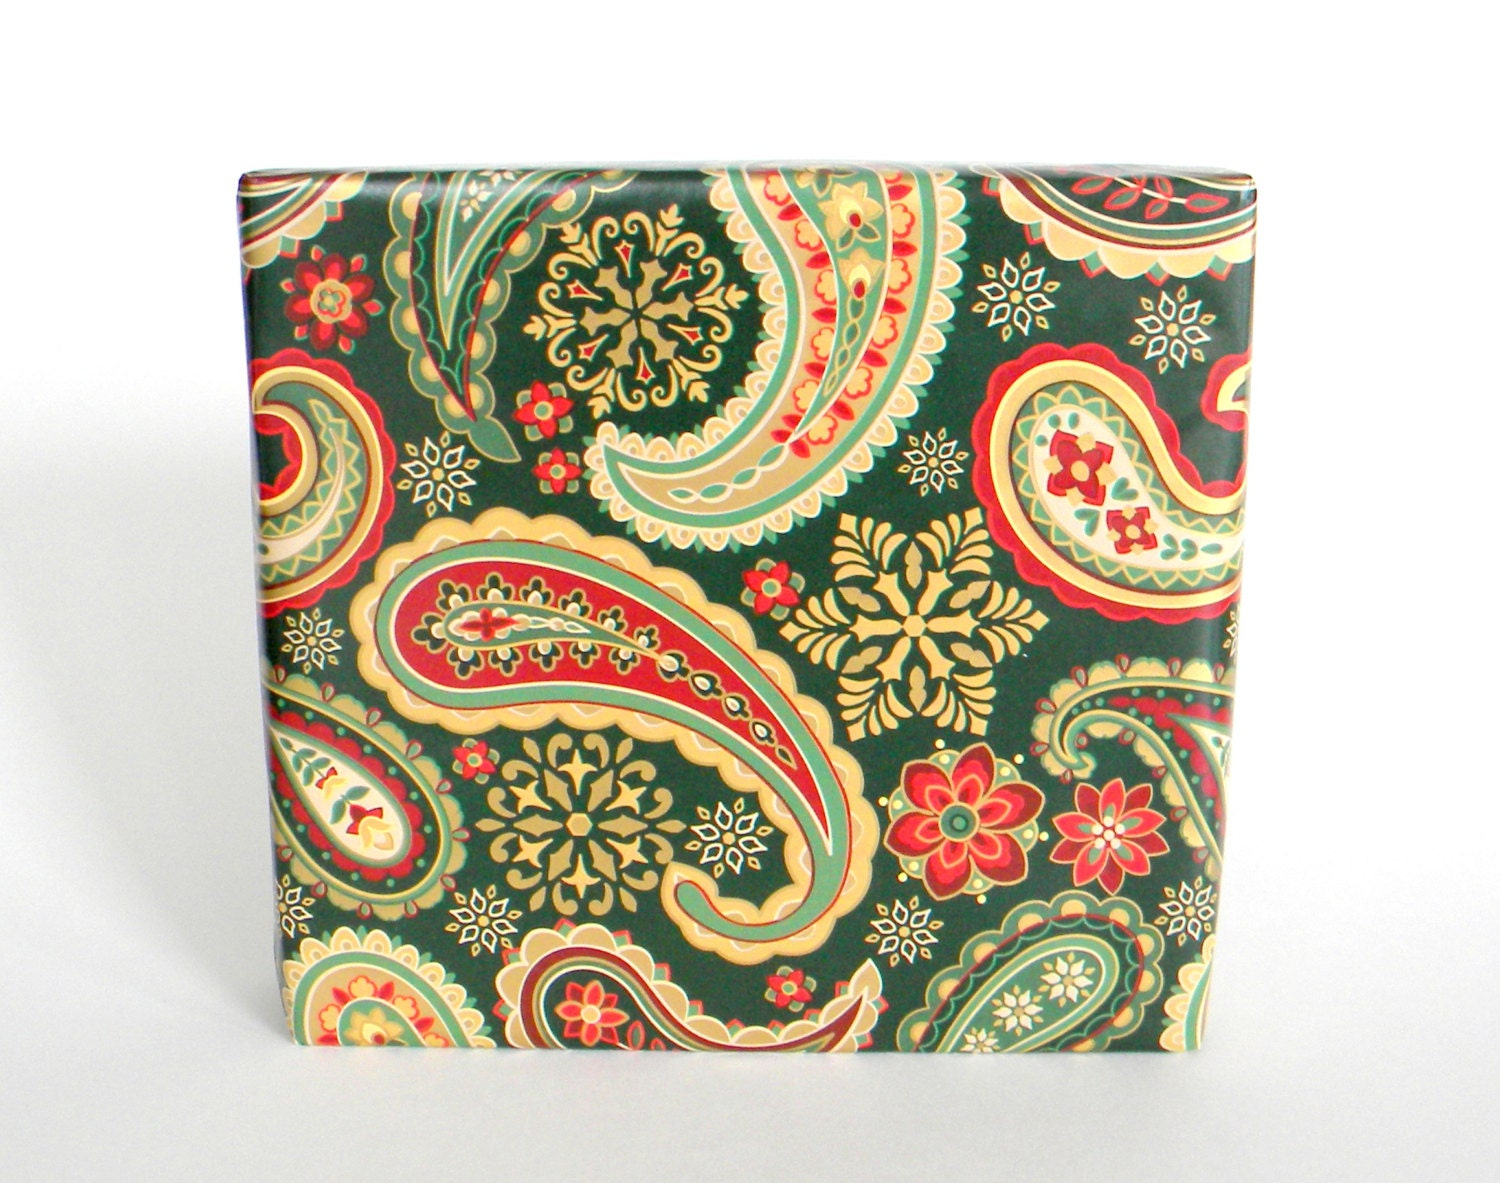 Elegant Paisley Christmas Wrapping Paper in Metallic Gold